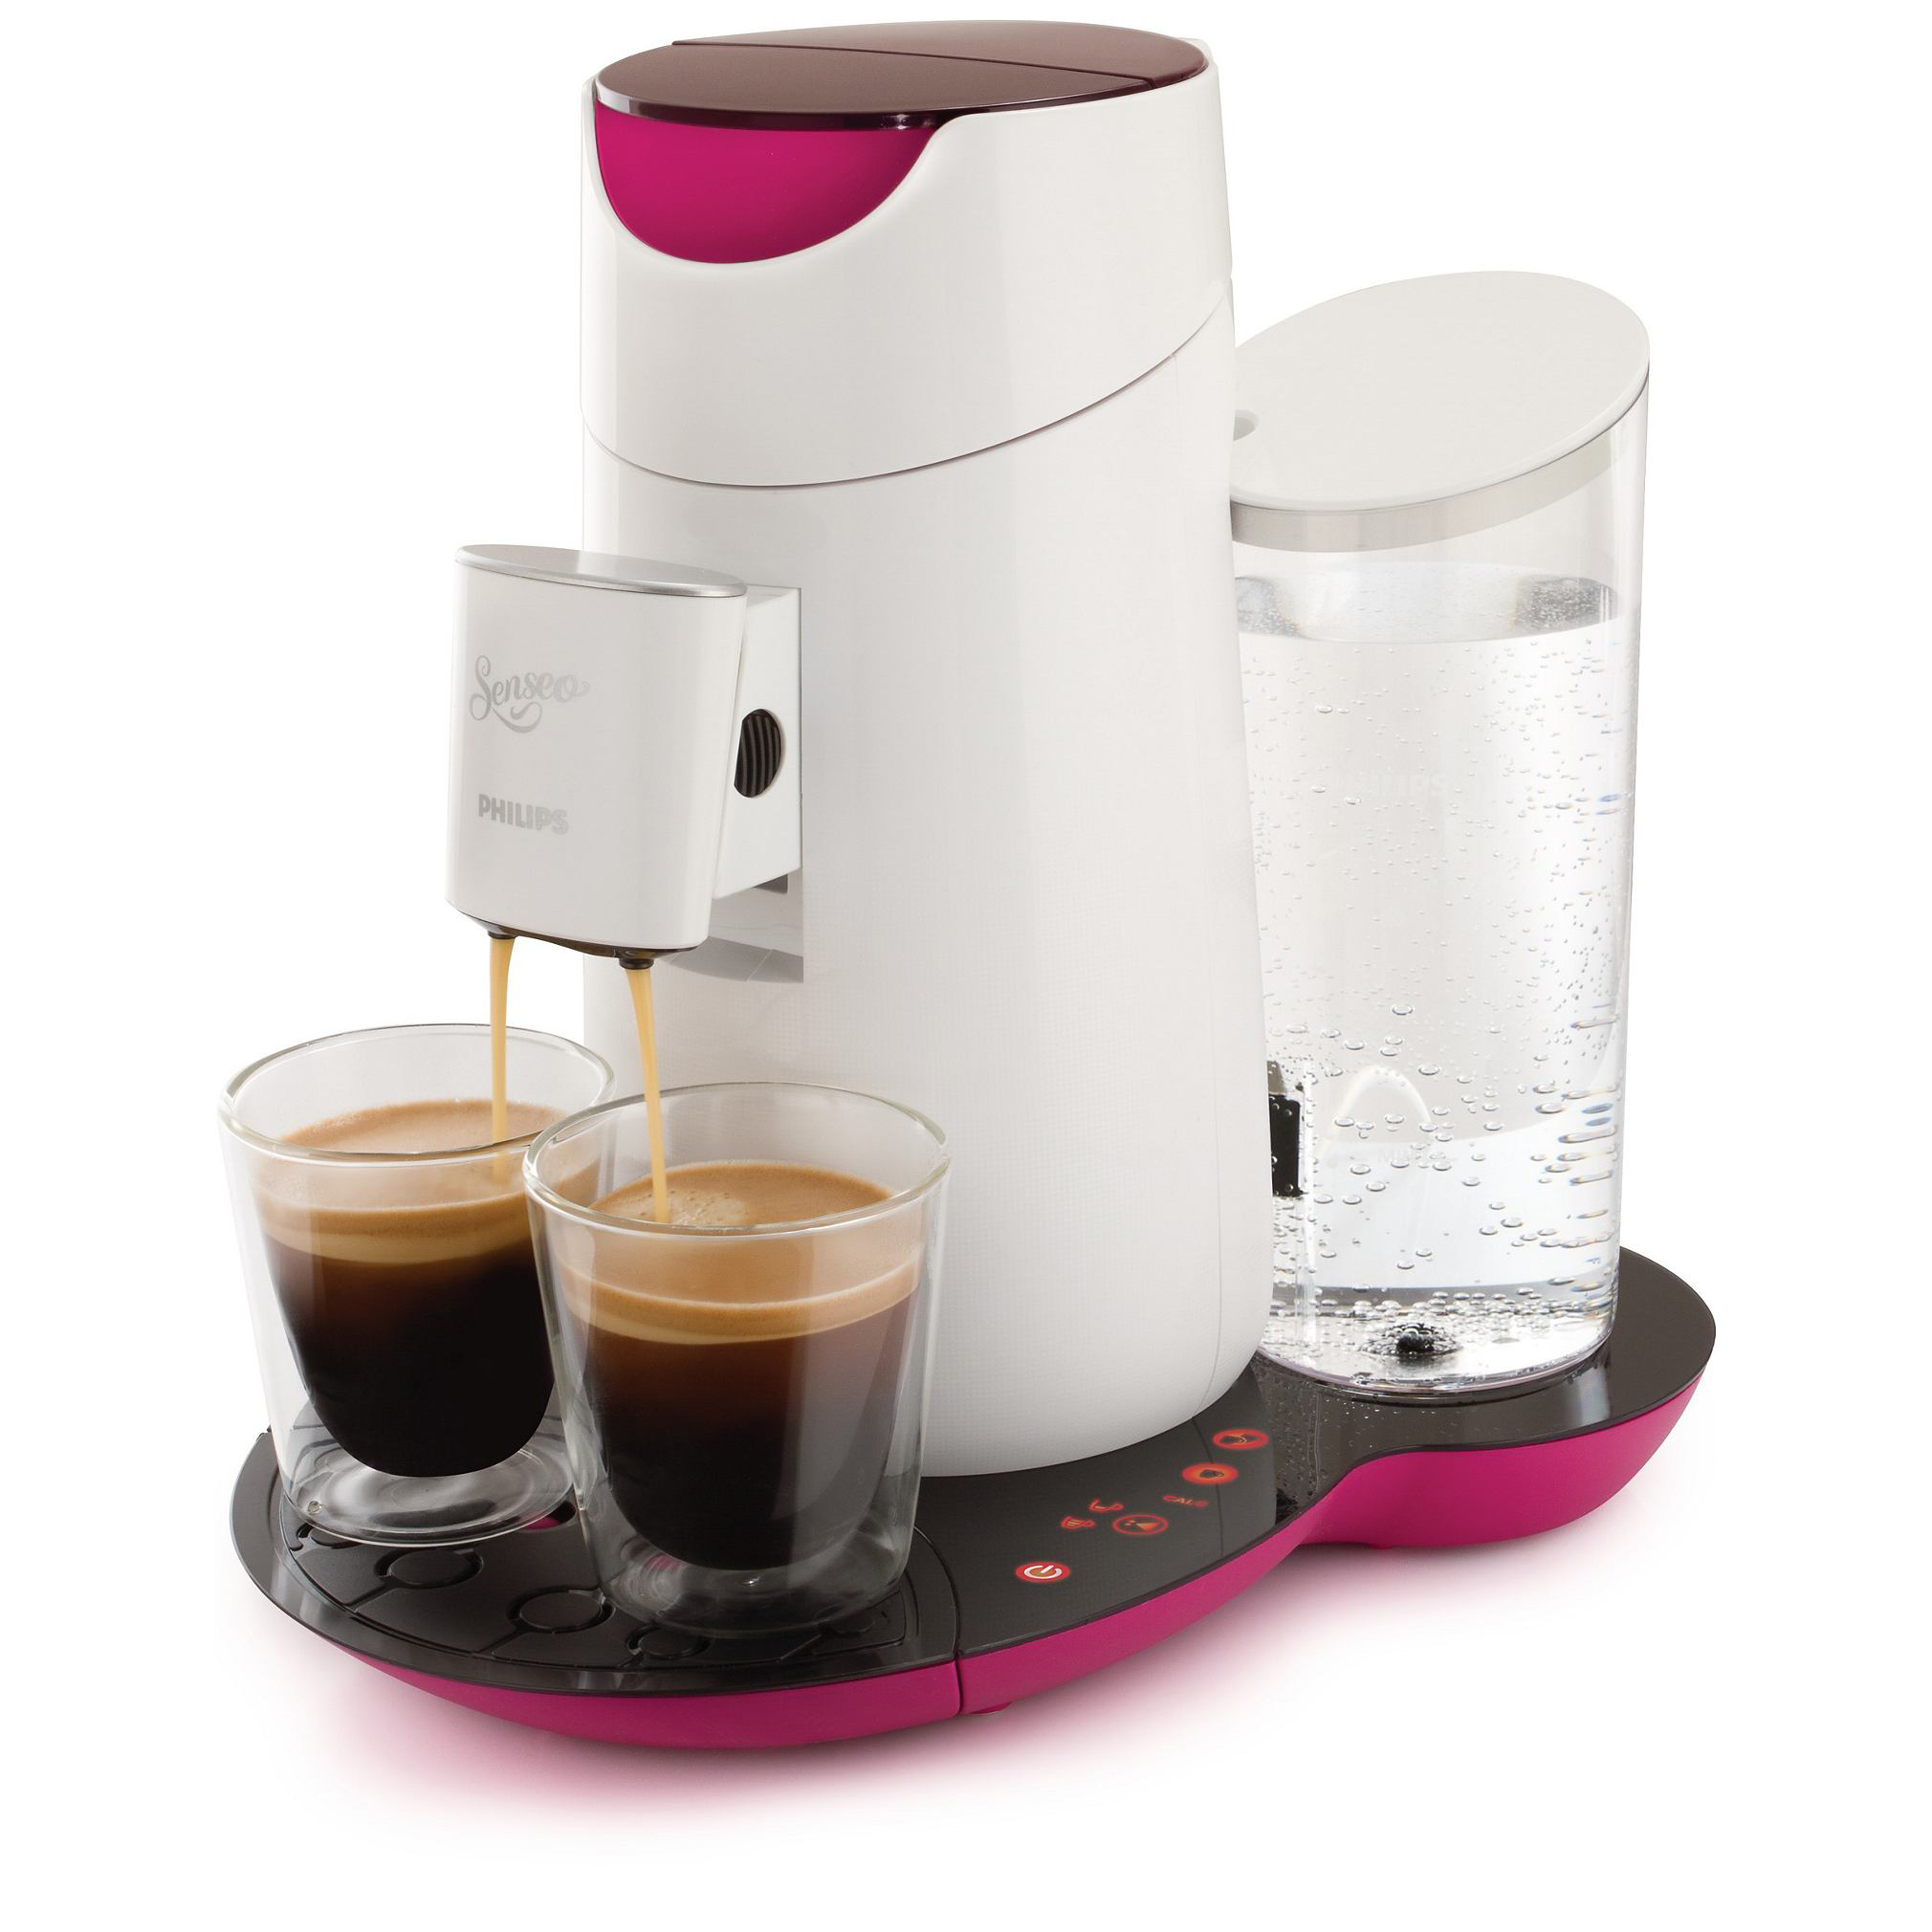 philips senseo twist coffee pod machine hd7870 20 fuchsia. Black Bedroom Furniture Sets. Home Design Ideas